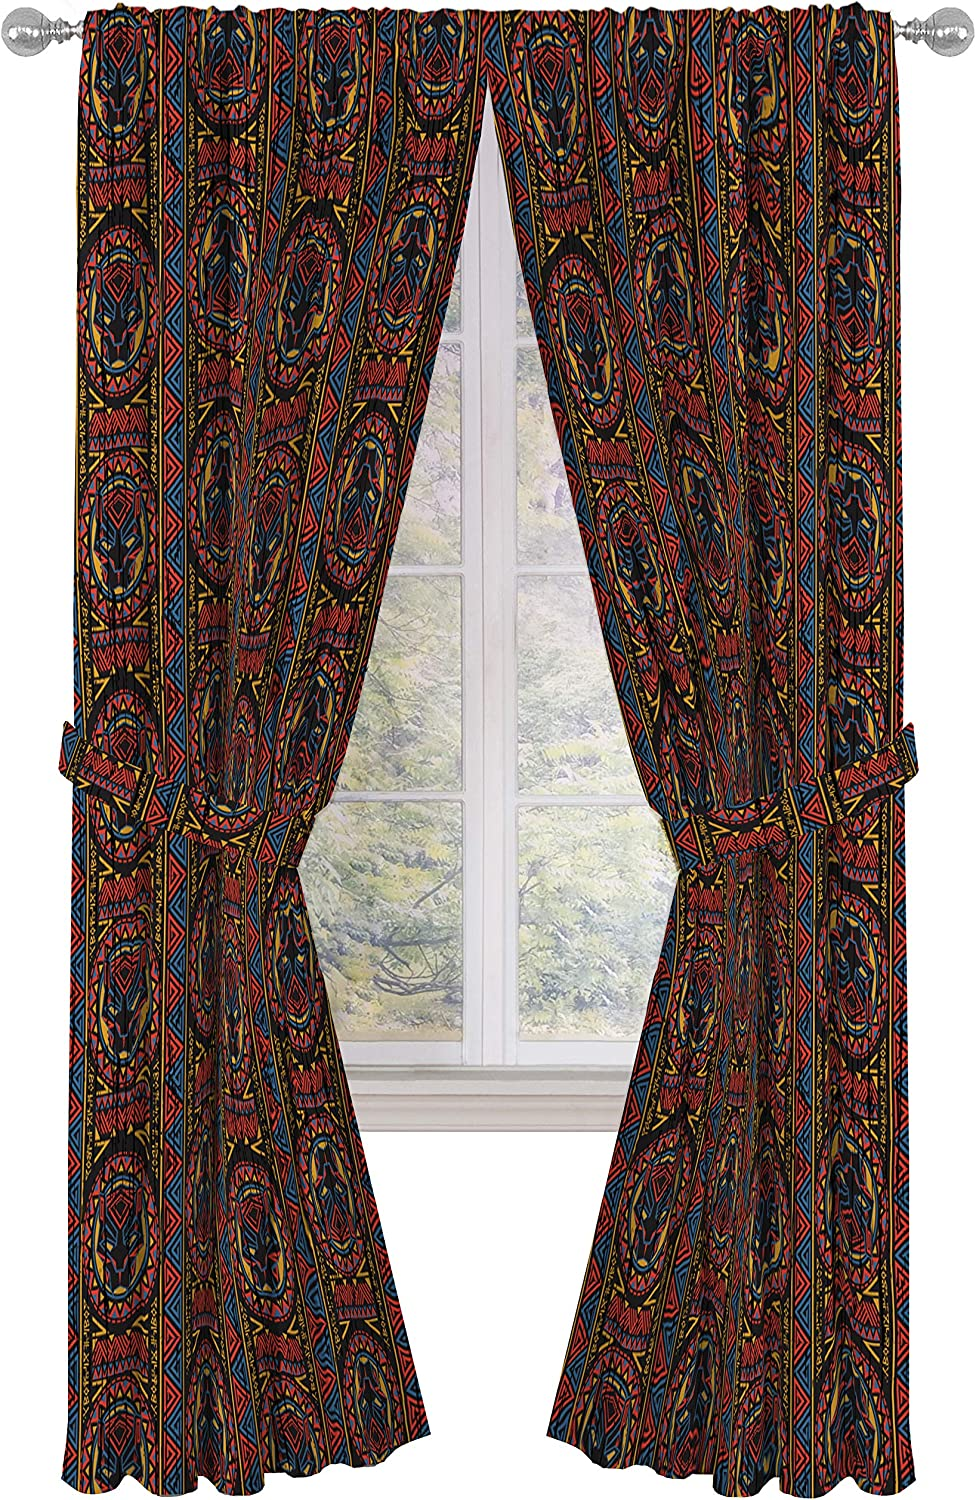 Beautiful Room D/écor /& Easy Set up Jay Franco Marvel Black Panther Tribal 63 inch Drapes 4 Piece Set Official Marvel Product Window Curtains Include 2 Panels /& 2 Tiebacks